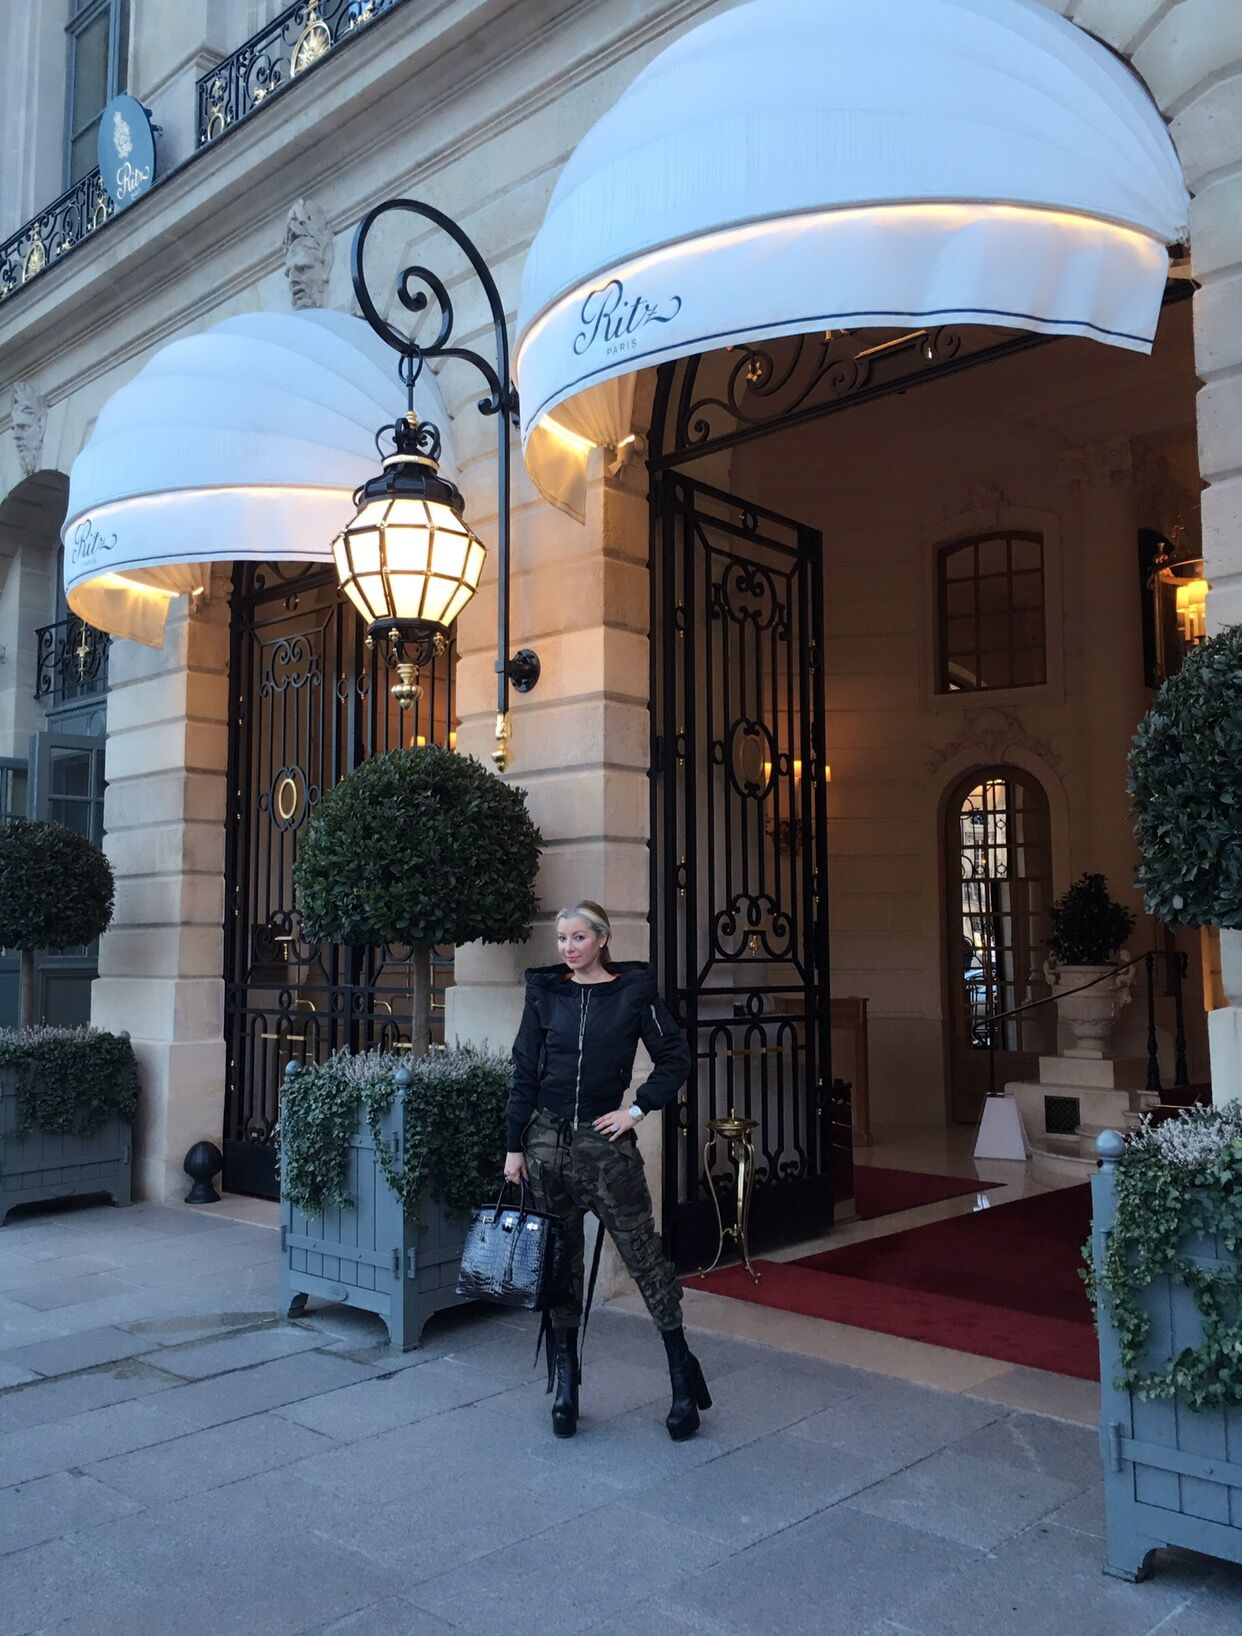 In front of the Ritz